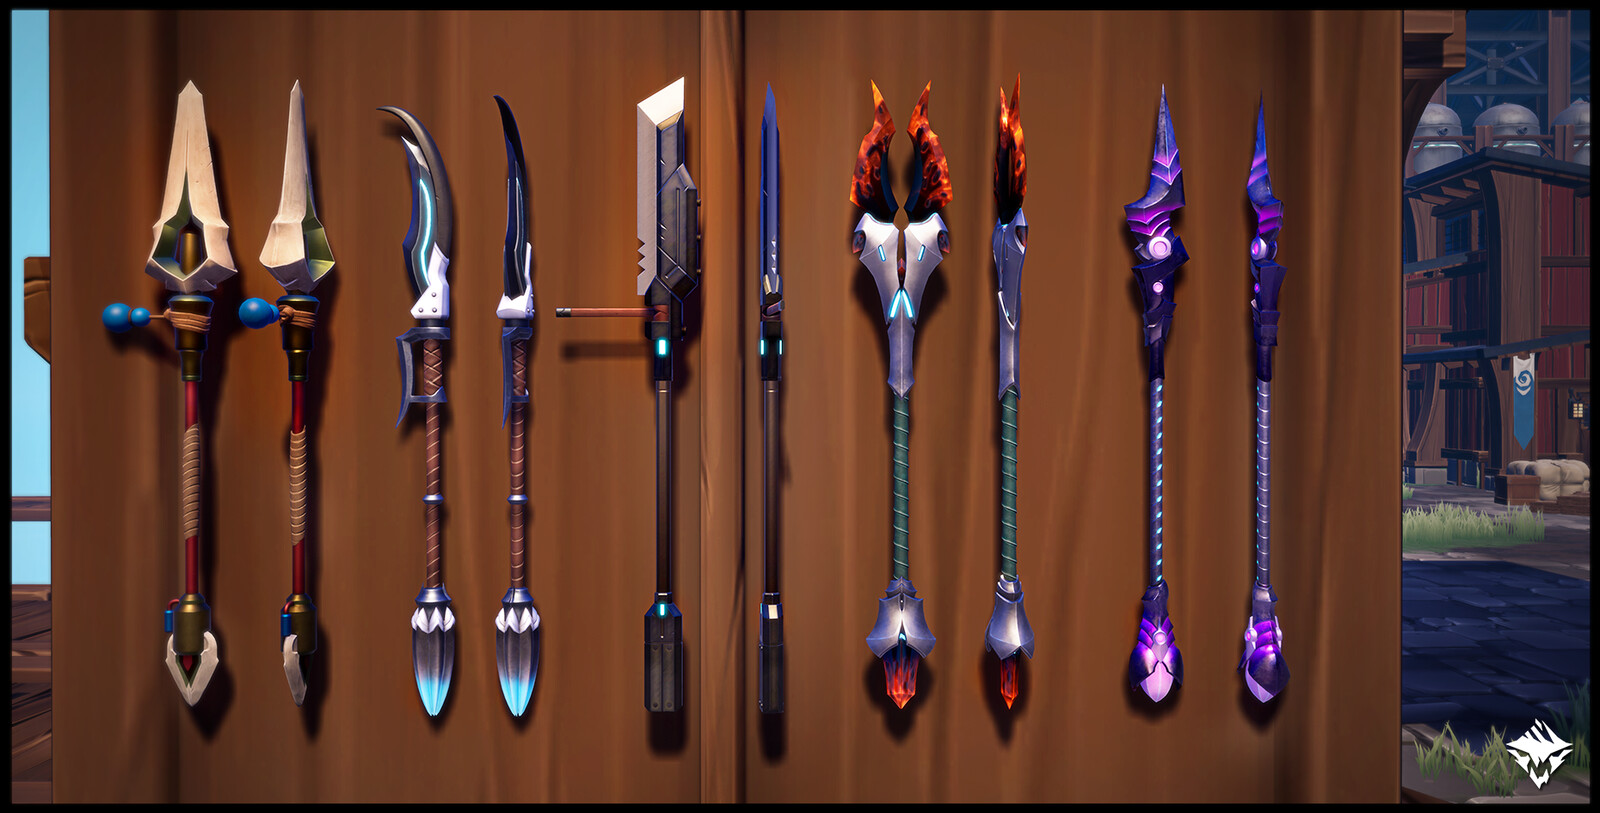 Corsair's Belaying Pike (Hunt Pass: Fortune & Glory), Winter Vortex (Craftable), Ostian War Pike (MTX), Inferno's Arrow (Craftable), Gyre of Night (Craftable)